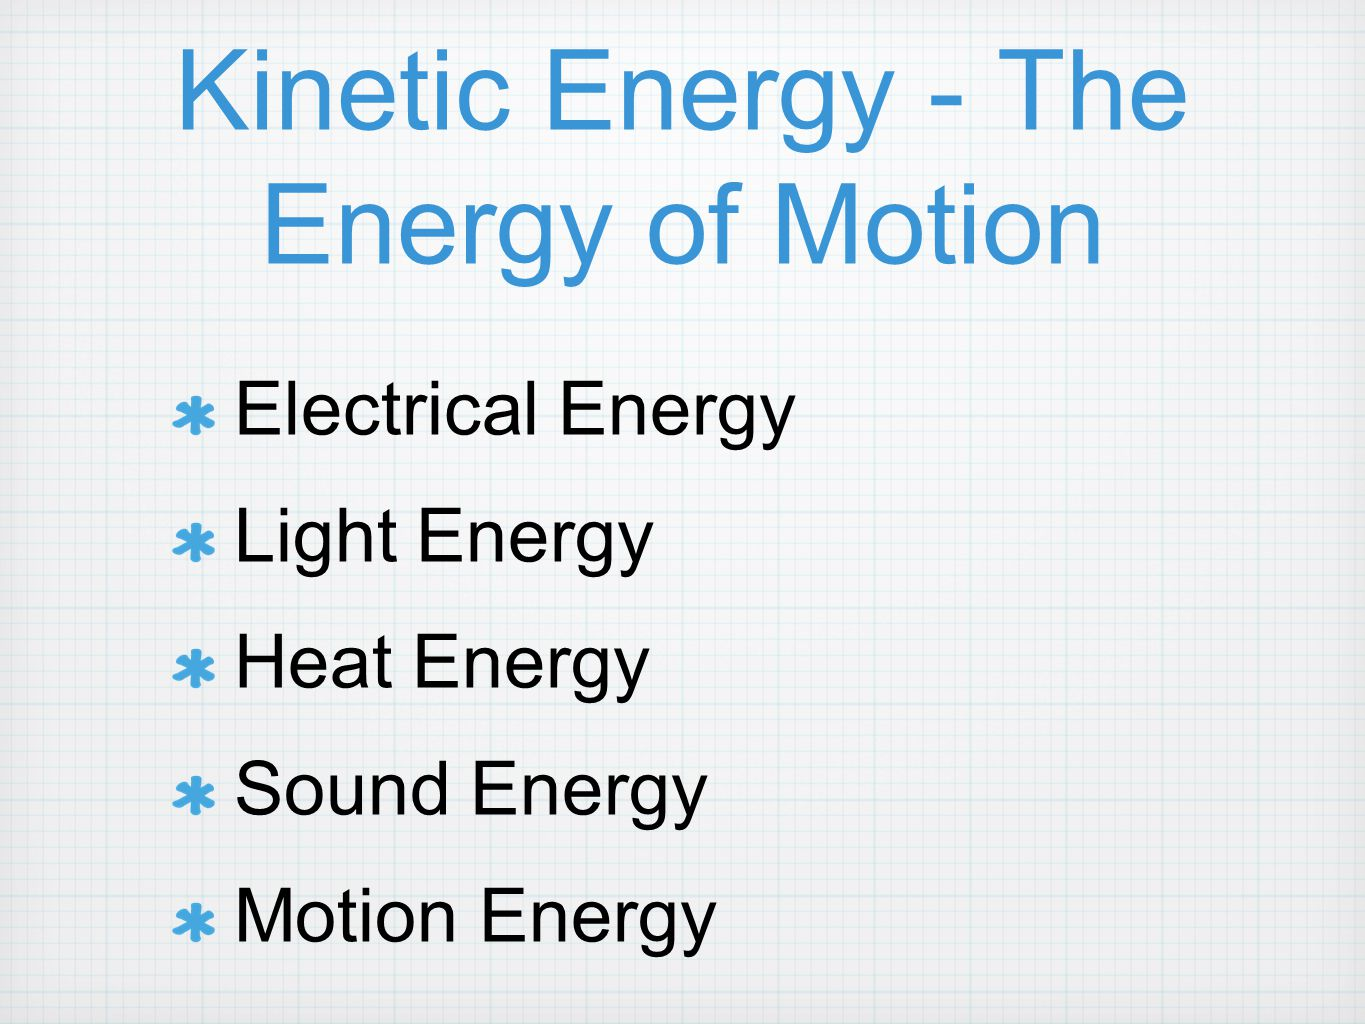 Kinetic Energy - The Energy of Motion